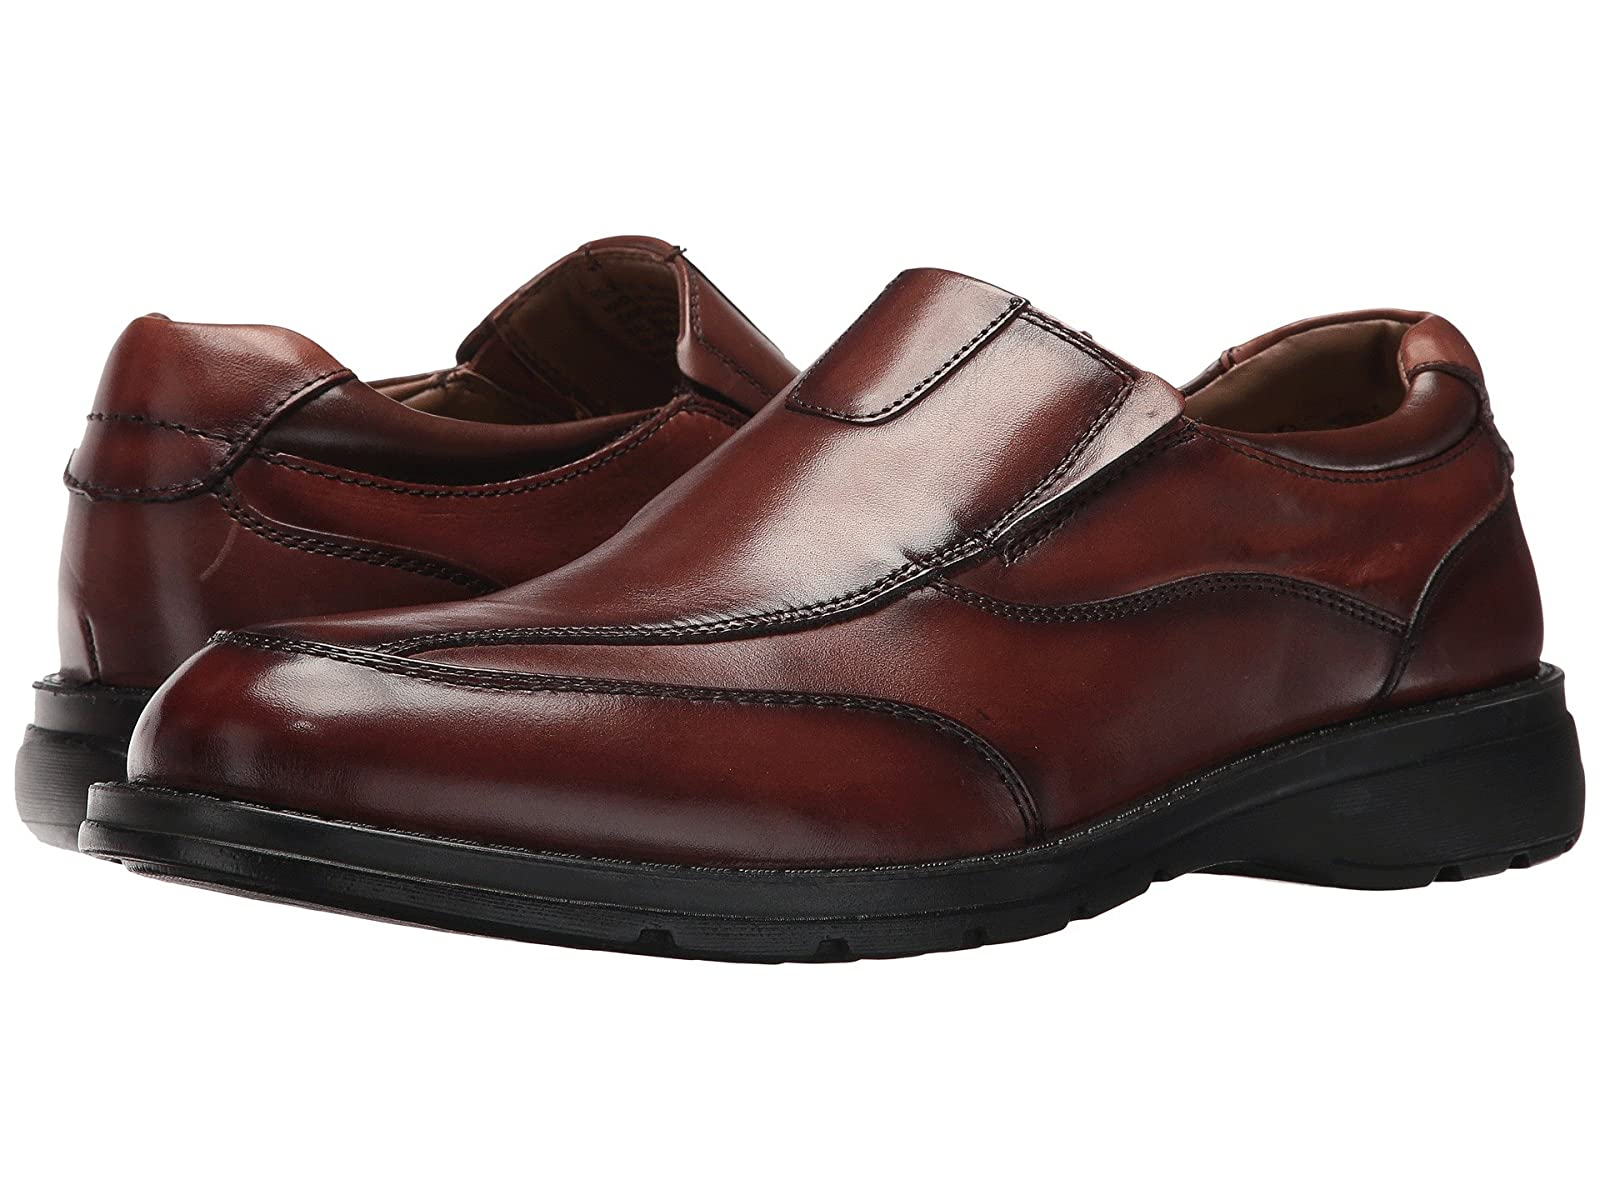 Dockers Fontana Mudguard LoaferAtmospheric grades have affordable shoes